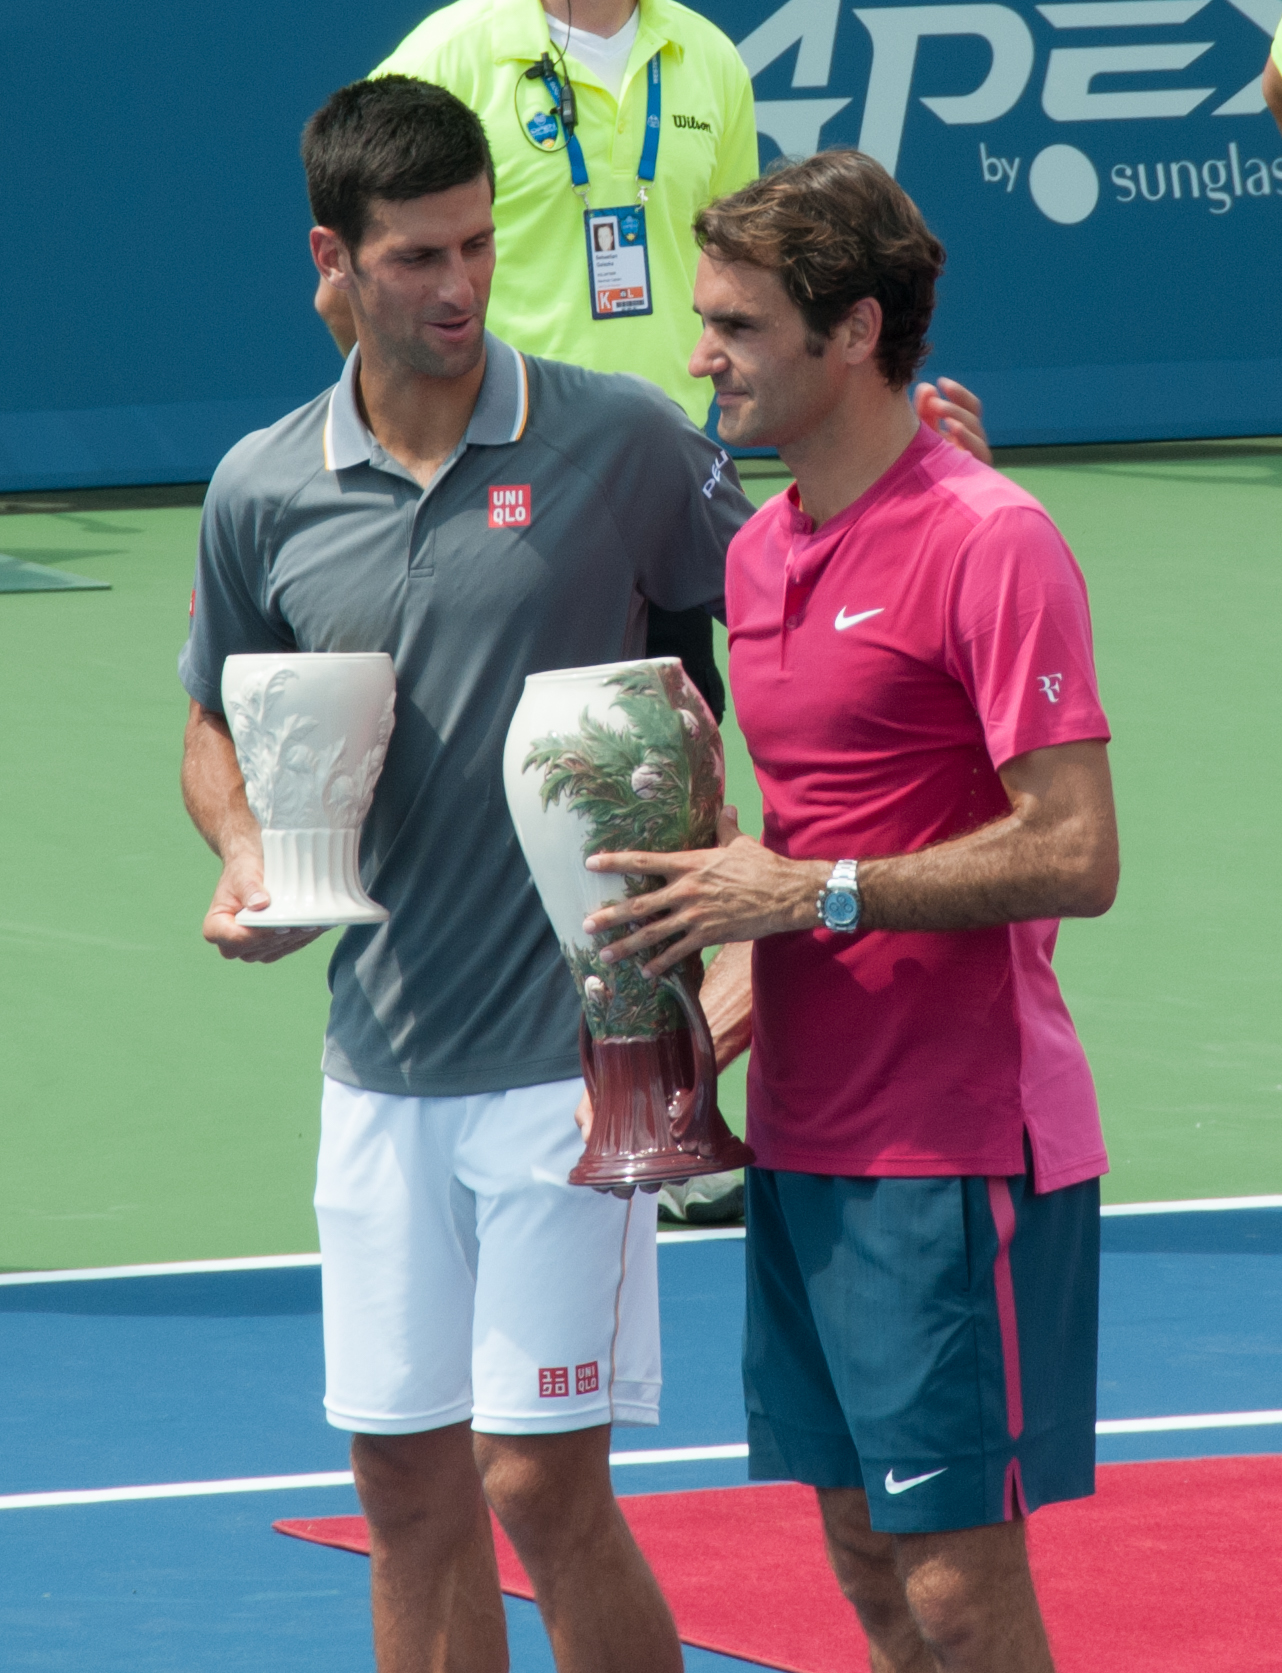 Djokovic Federer Rivalry Wikipedia